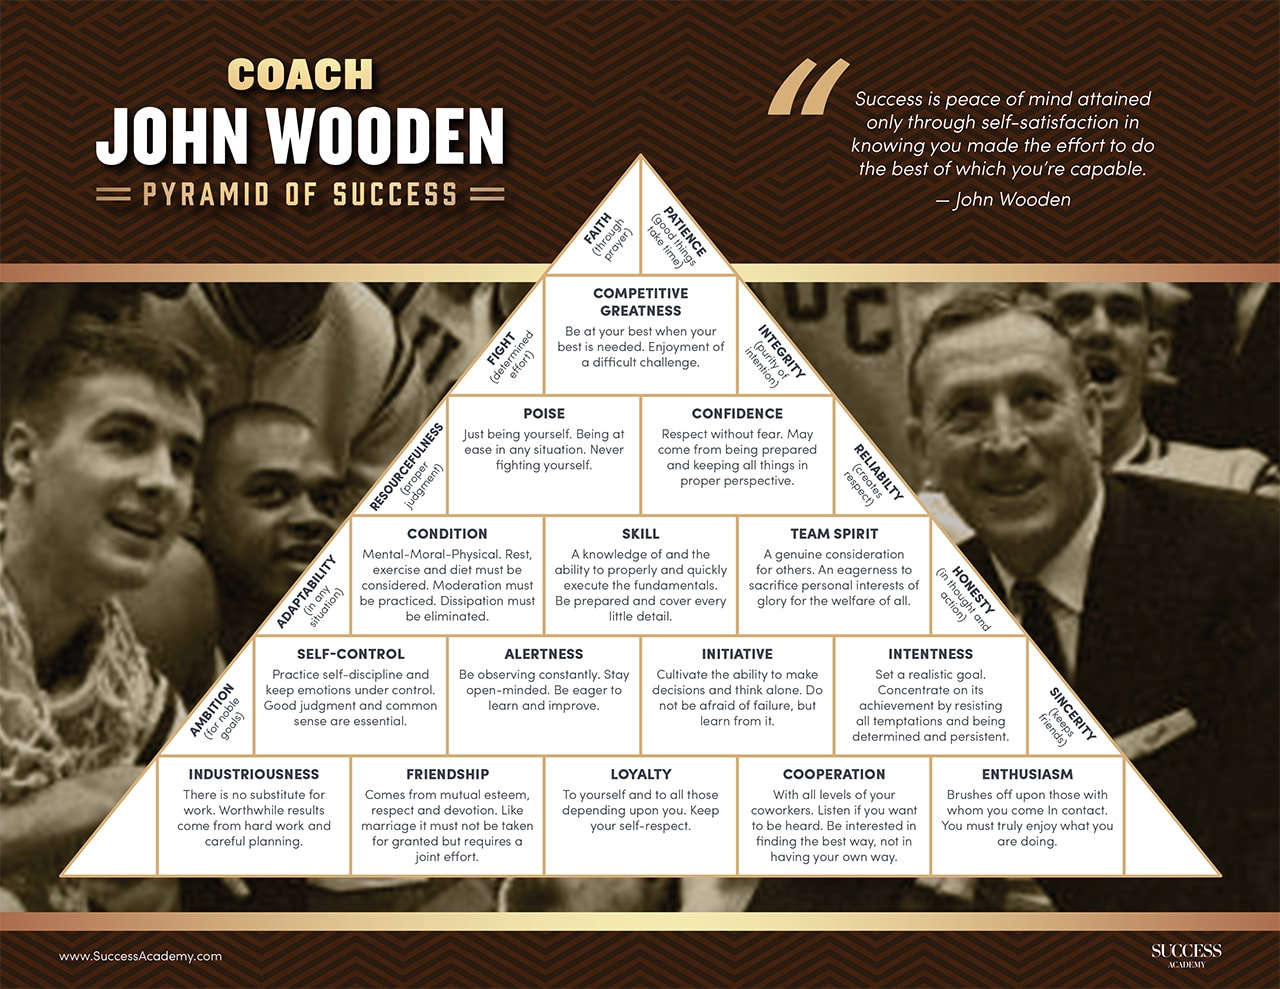 Pyramid Of Success By Coach John Wooden Digital Learning Course